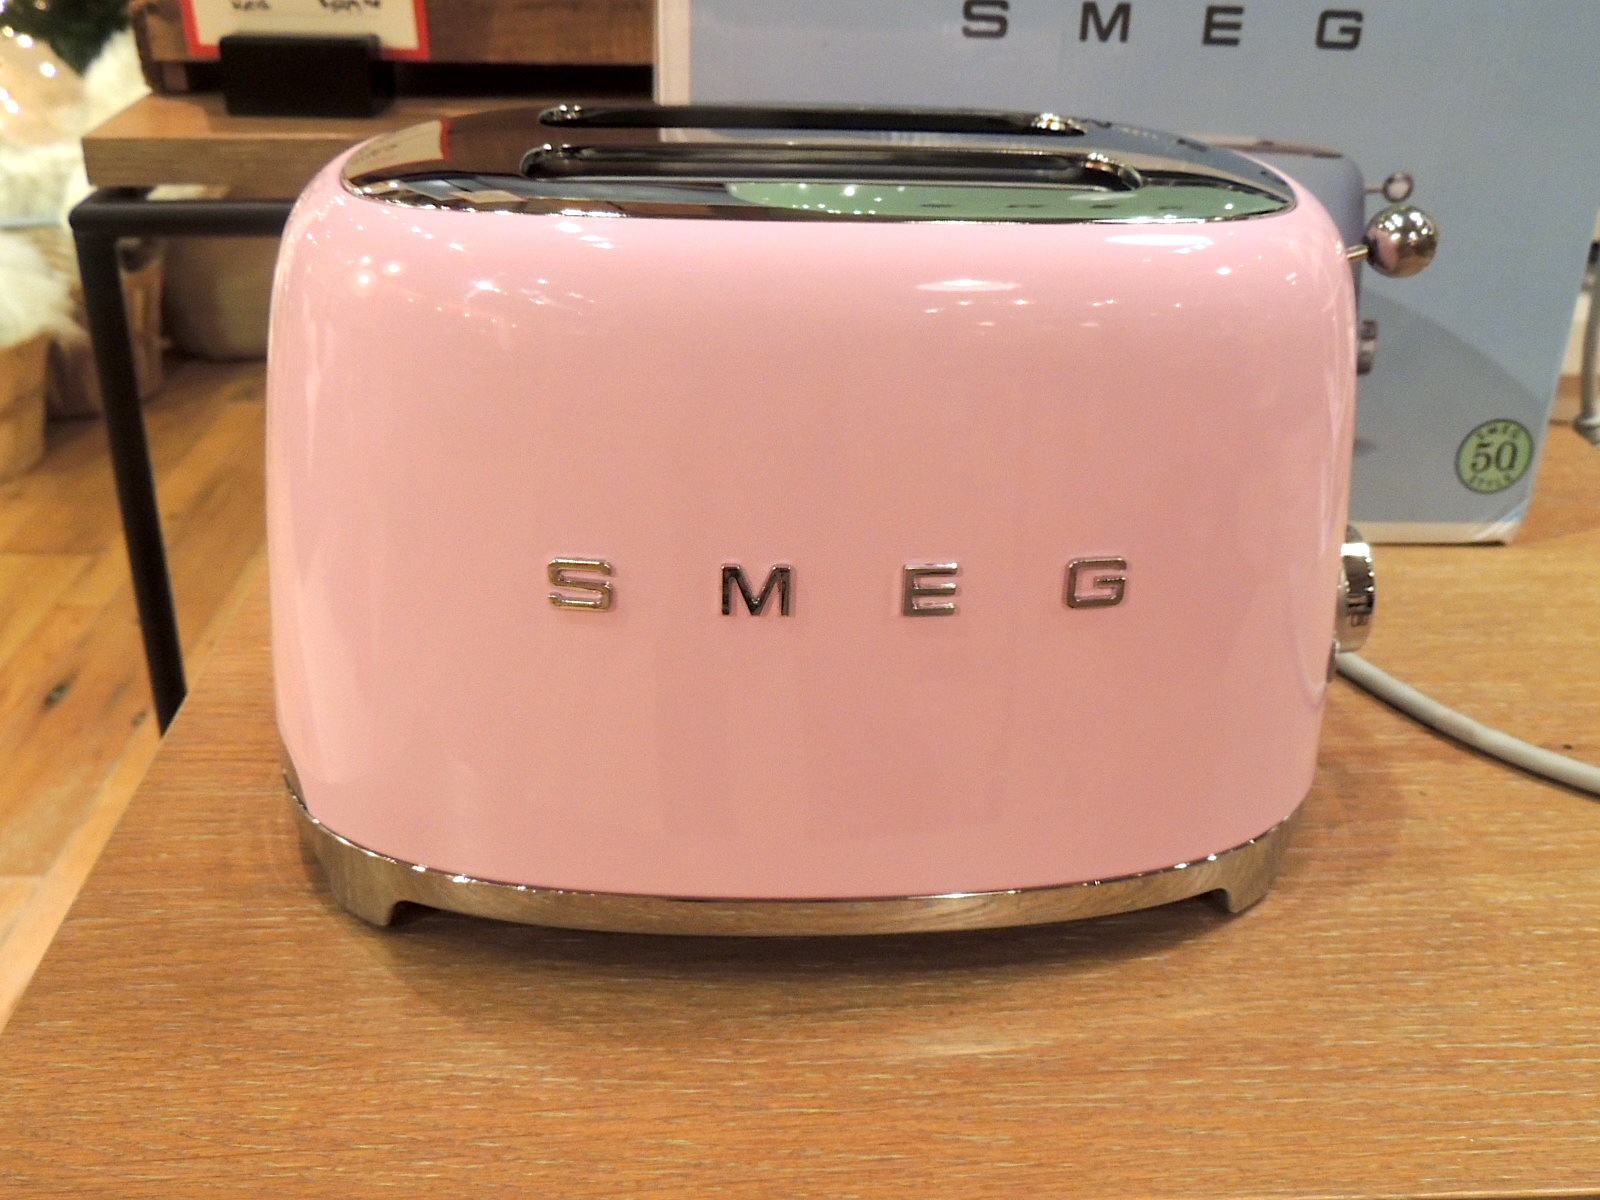 smeg pink 1 a 50u0027s retro style pink by smeg in a. Black Bedroom Furniture Sets. Home Design Ideas